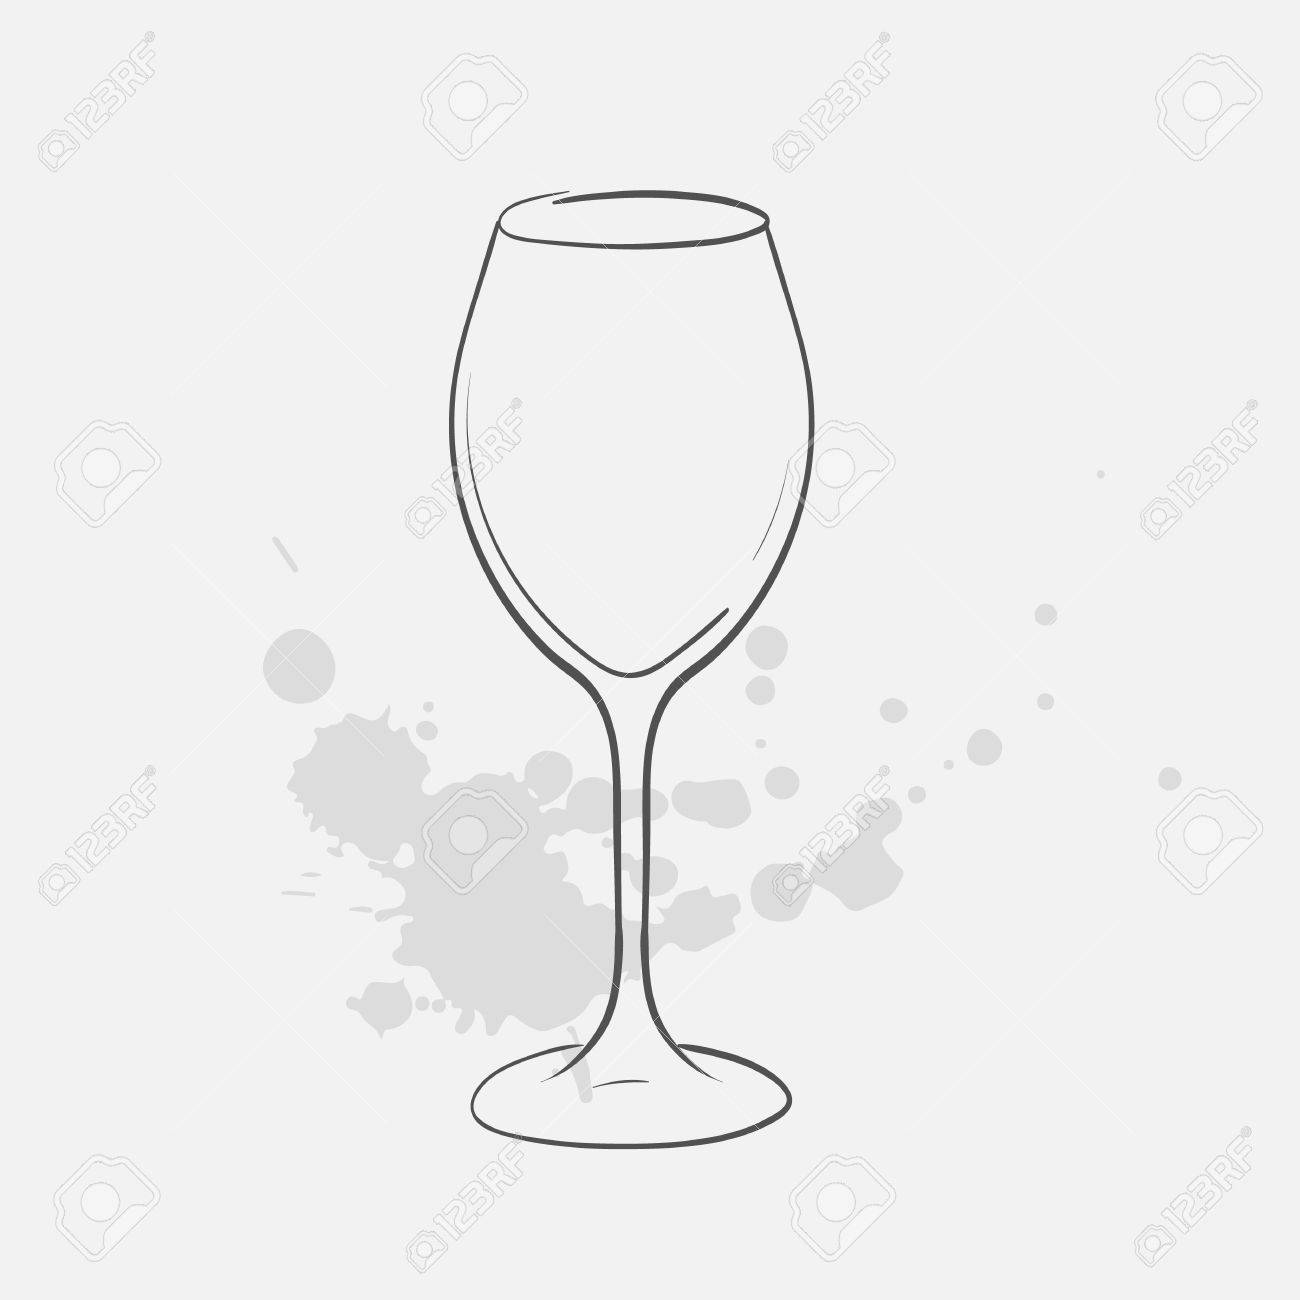 White Wine Glass Vector Sketch Icon Royalty Free Cliparts Vectors And Stock Illustration Image 74876457